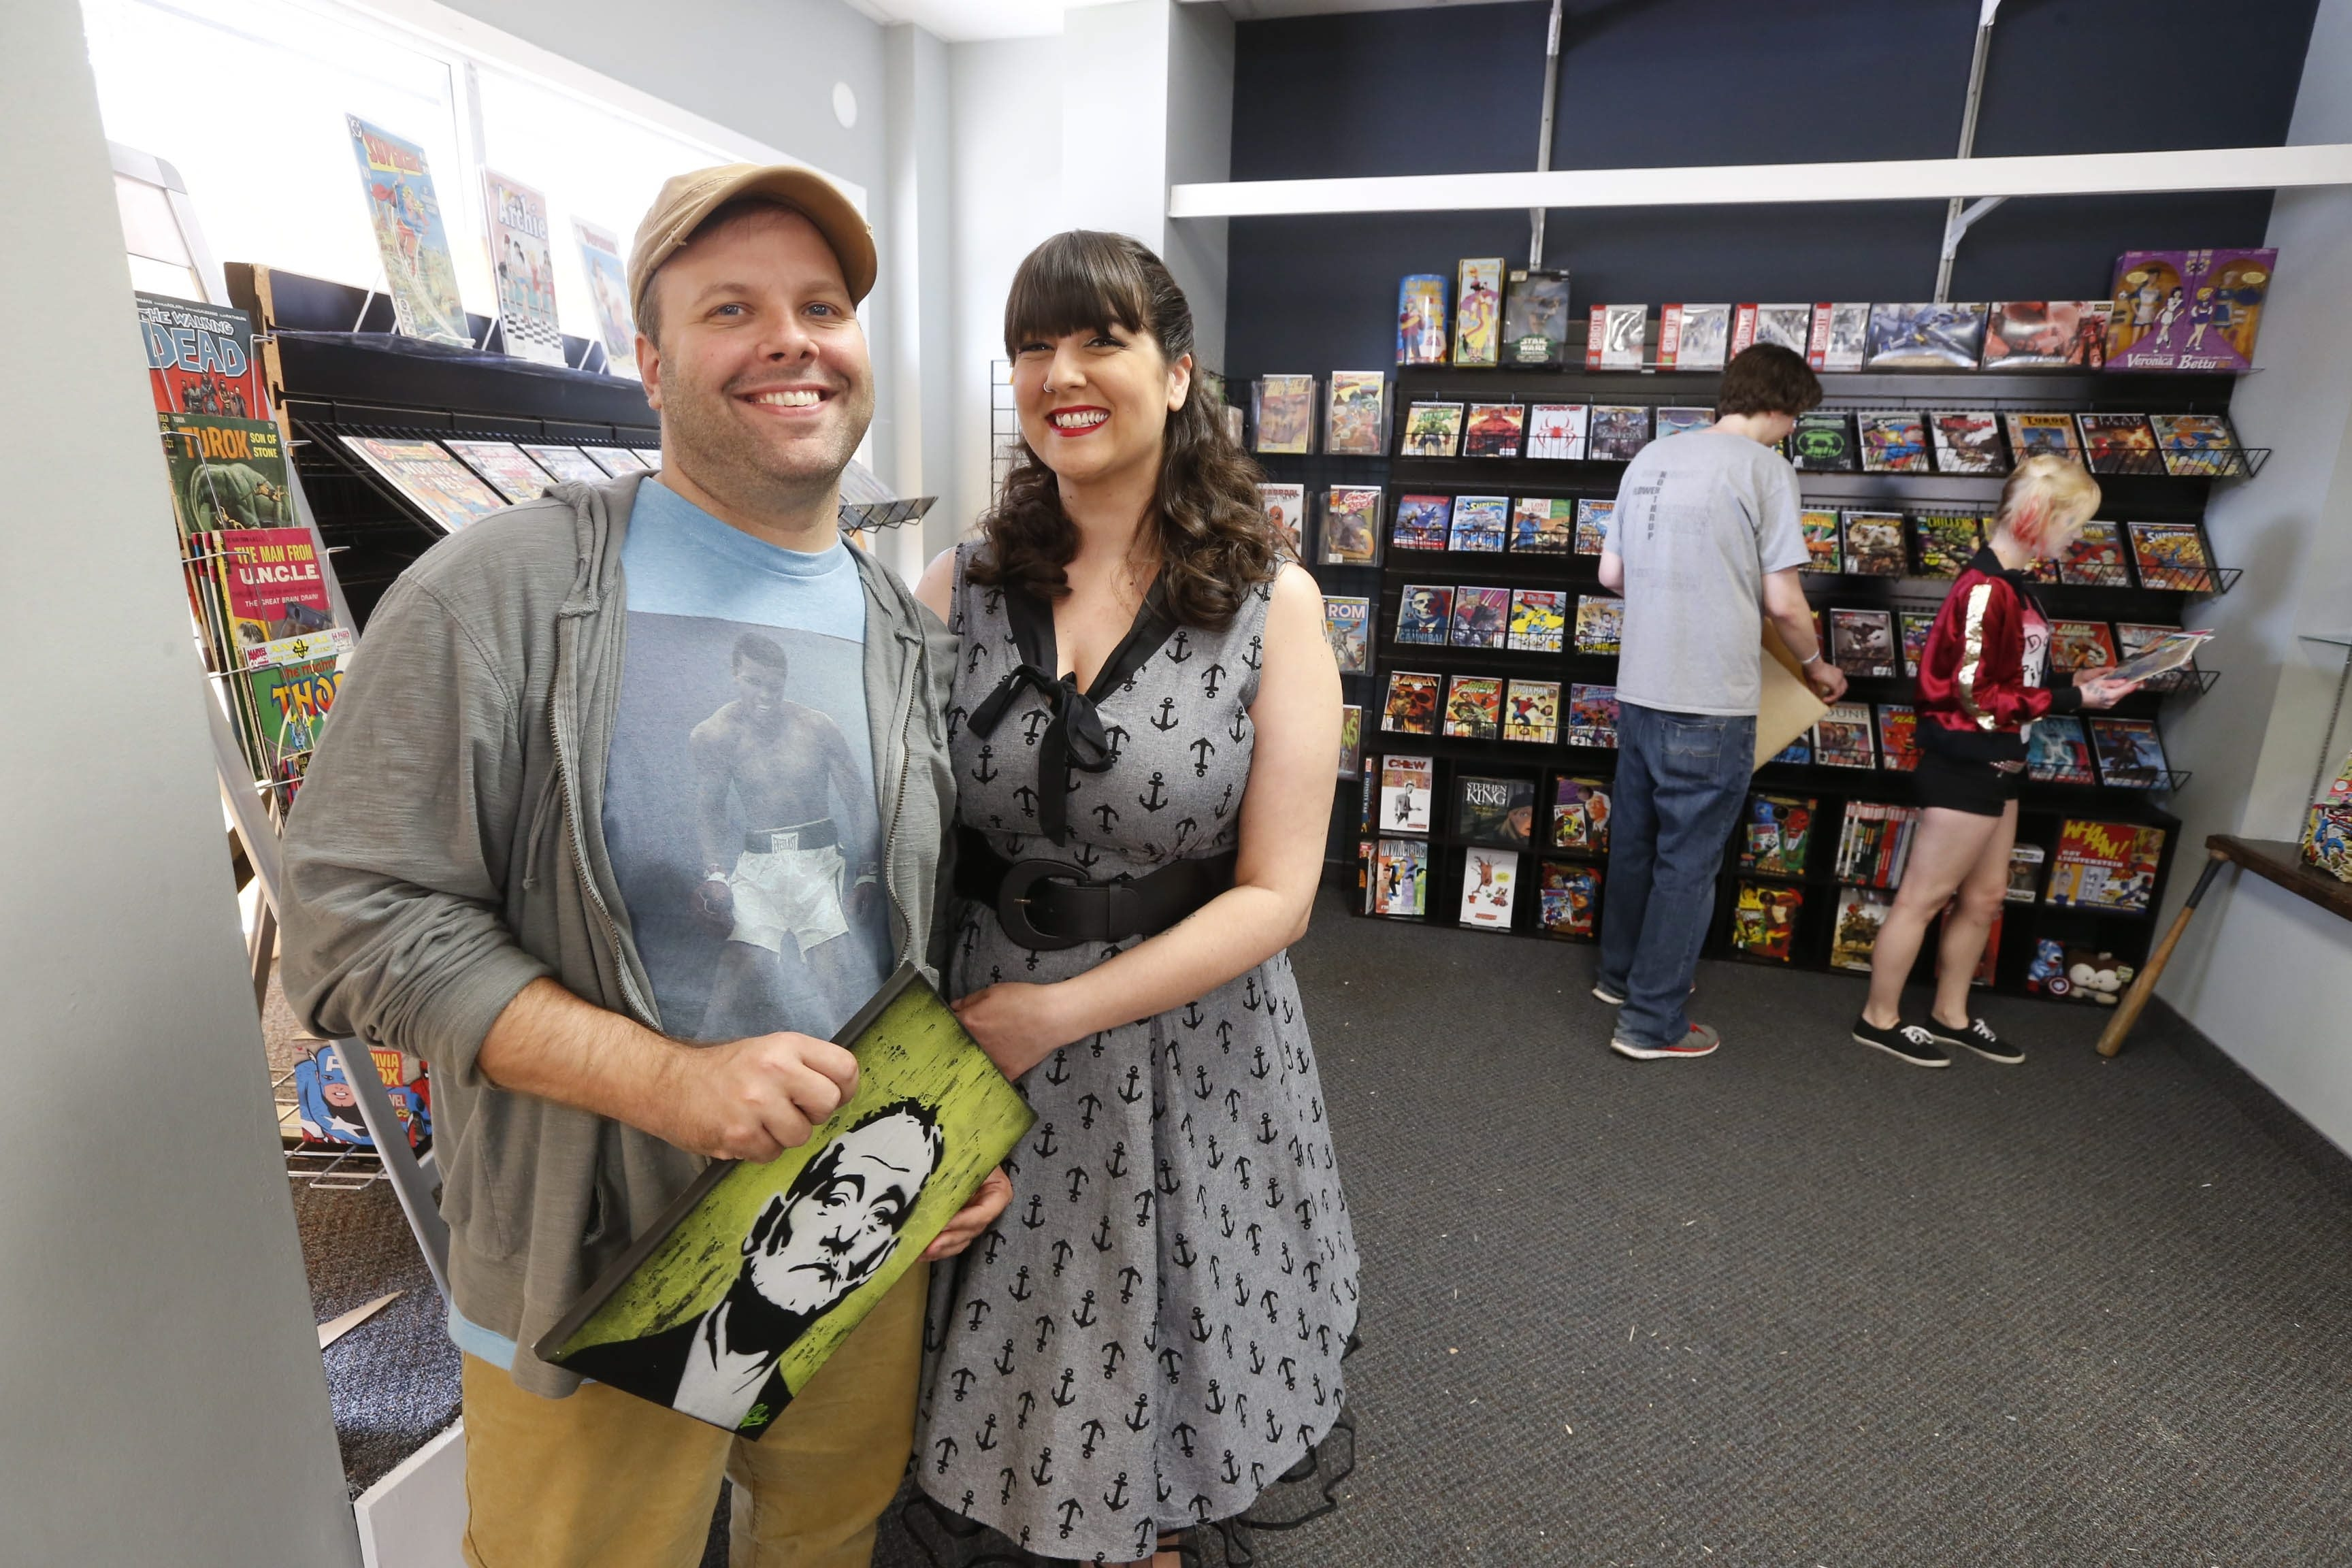 Jay and Amy Berent, who own Pulp 716, run the POWer Reader Group.